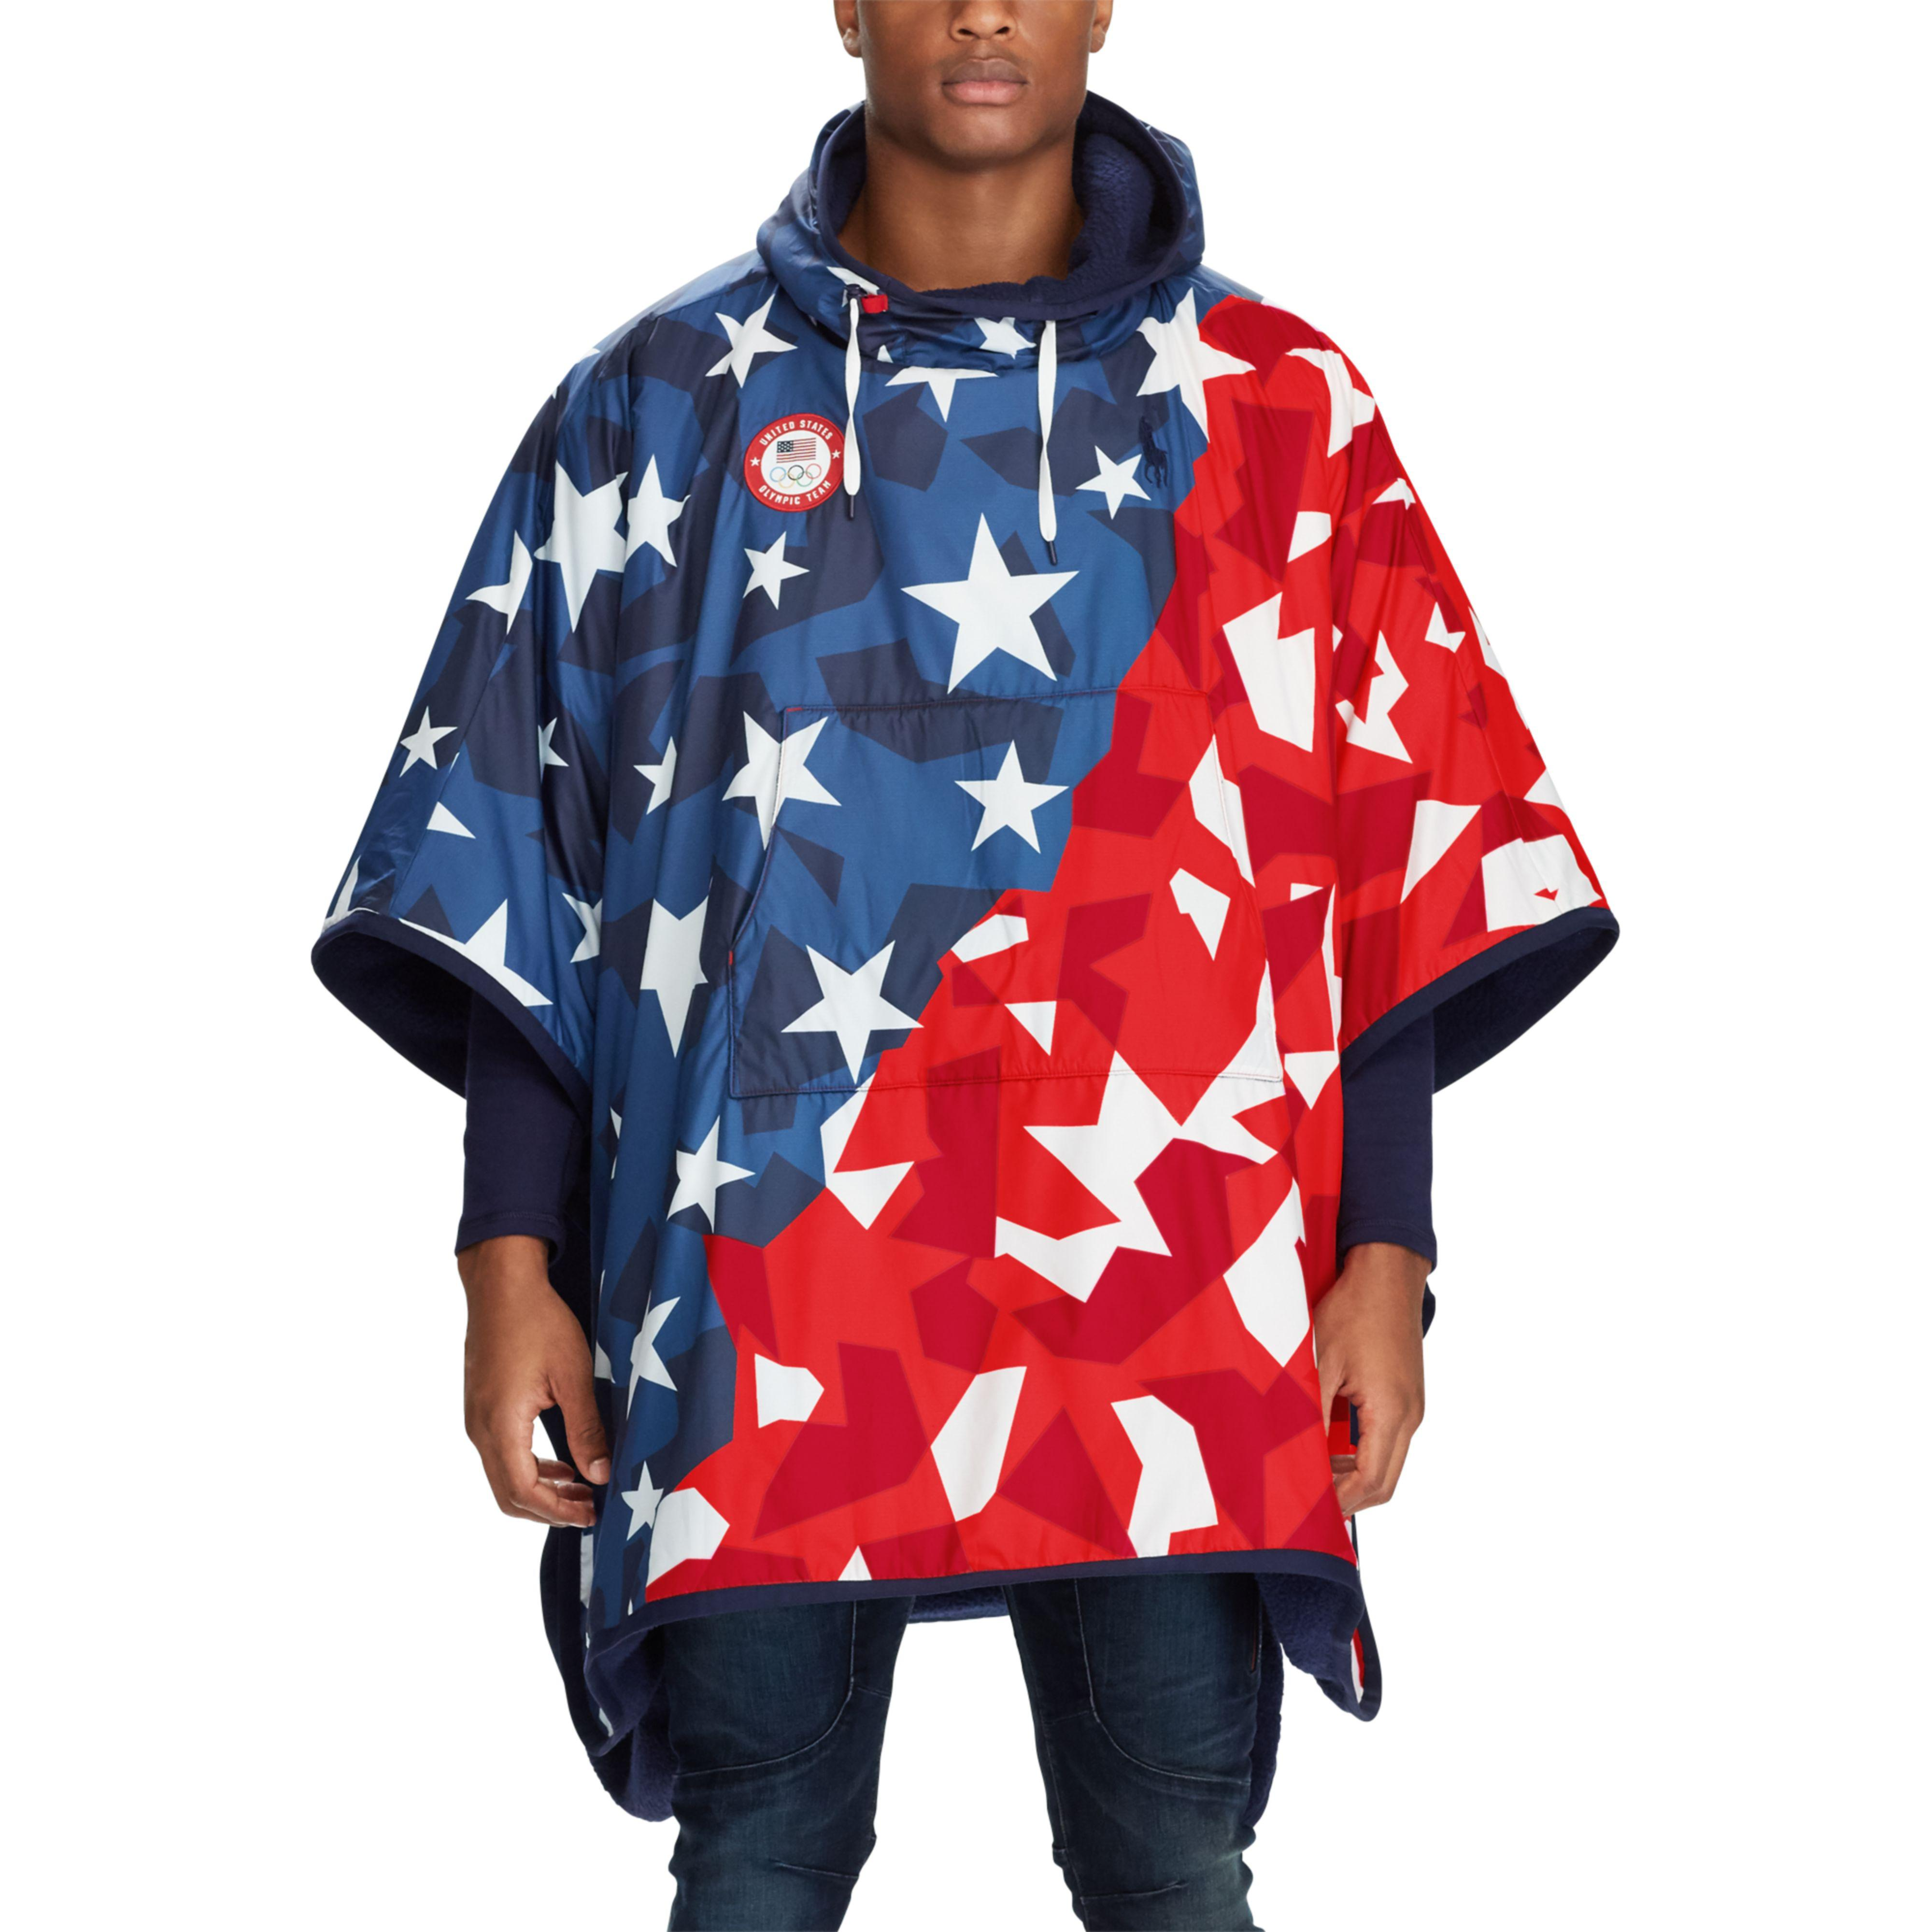 35aed8e0cde4 Lyst - Polo Ralph Lauren Team Usa Ripstop Hooded Poncho for Men